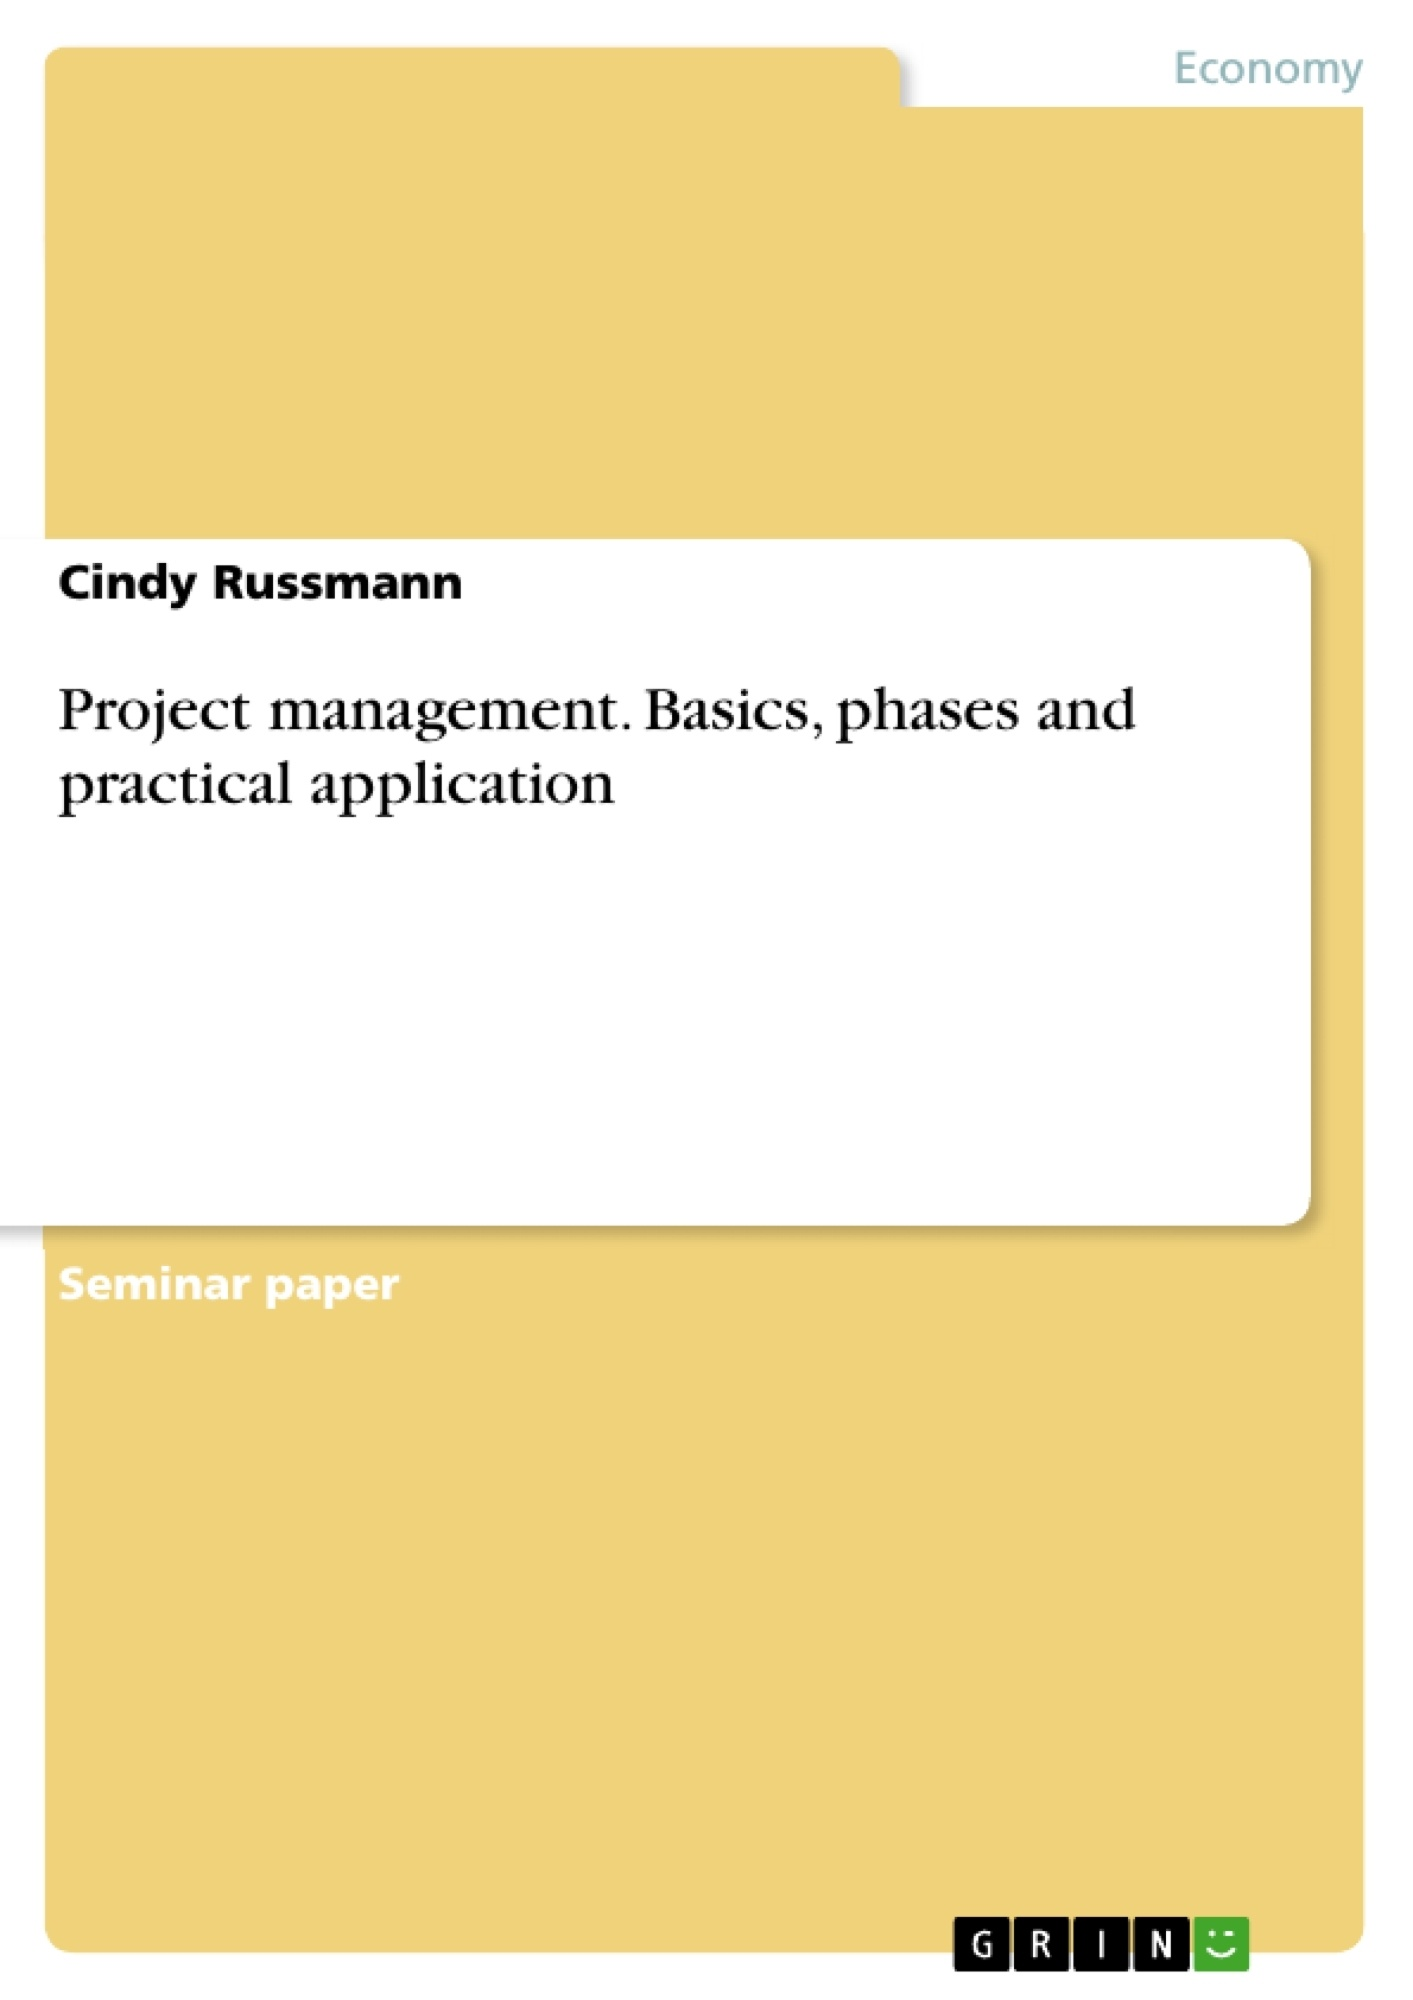 Title: Project management. Basics, phases and practical application